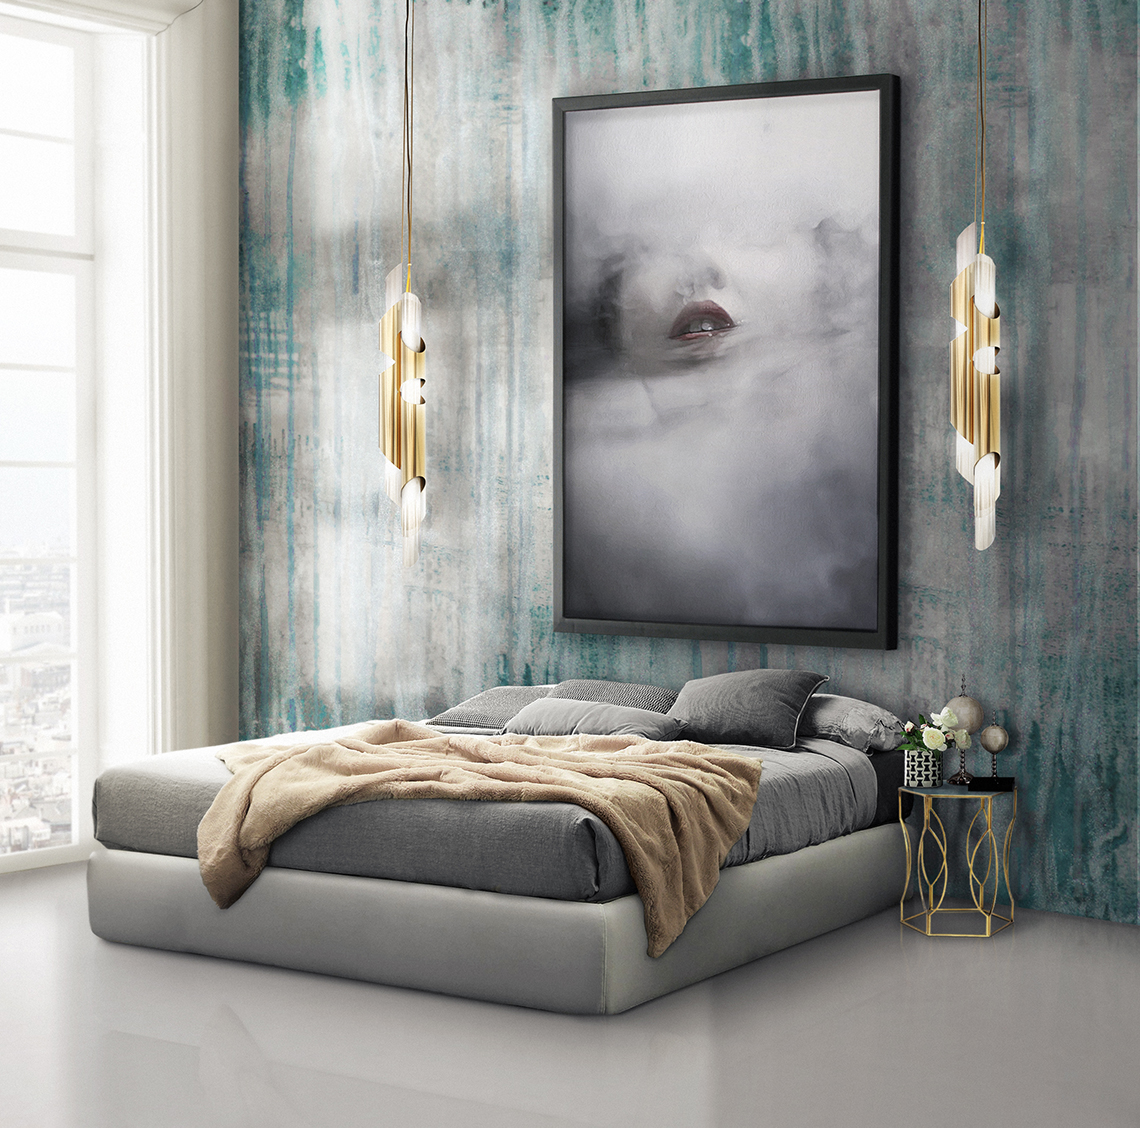 Luxury design bedroom ideas Luxxu luxury design Luxury design ideas for bedrooms Luxury design bedroom ideas Luxxu